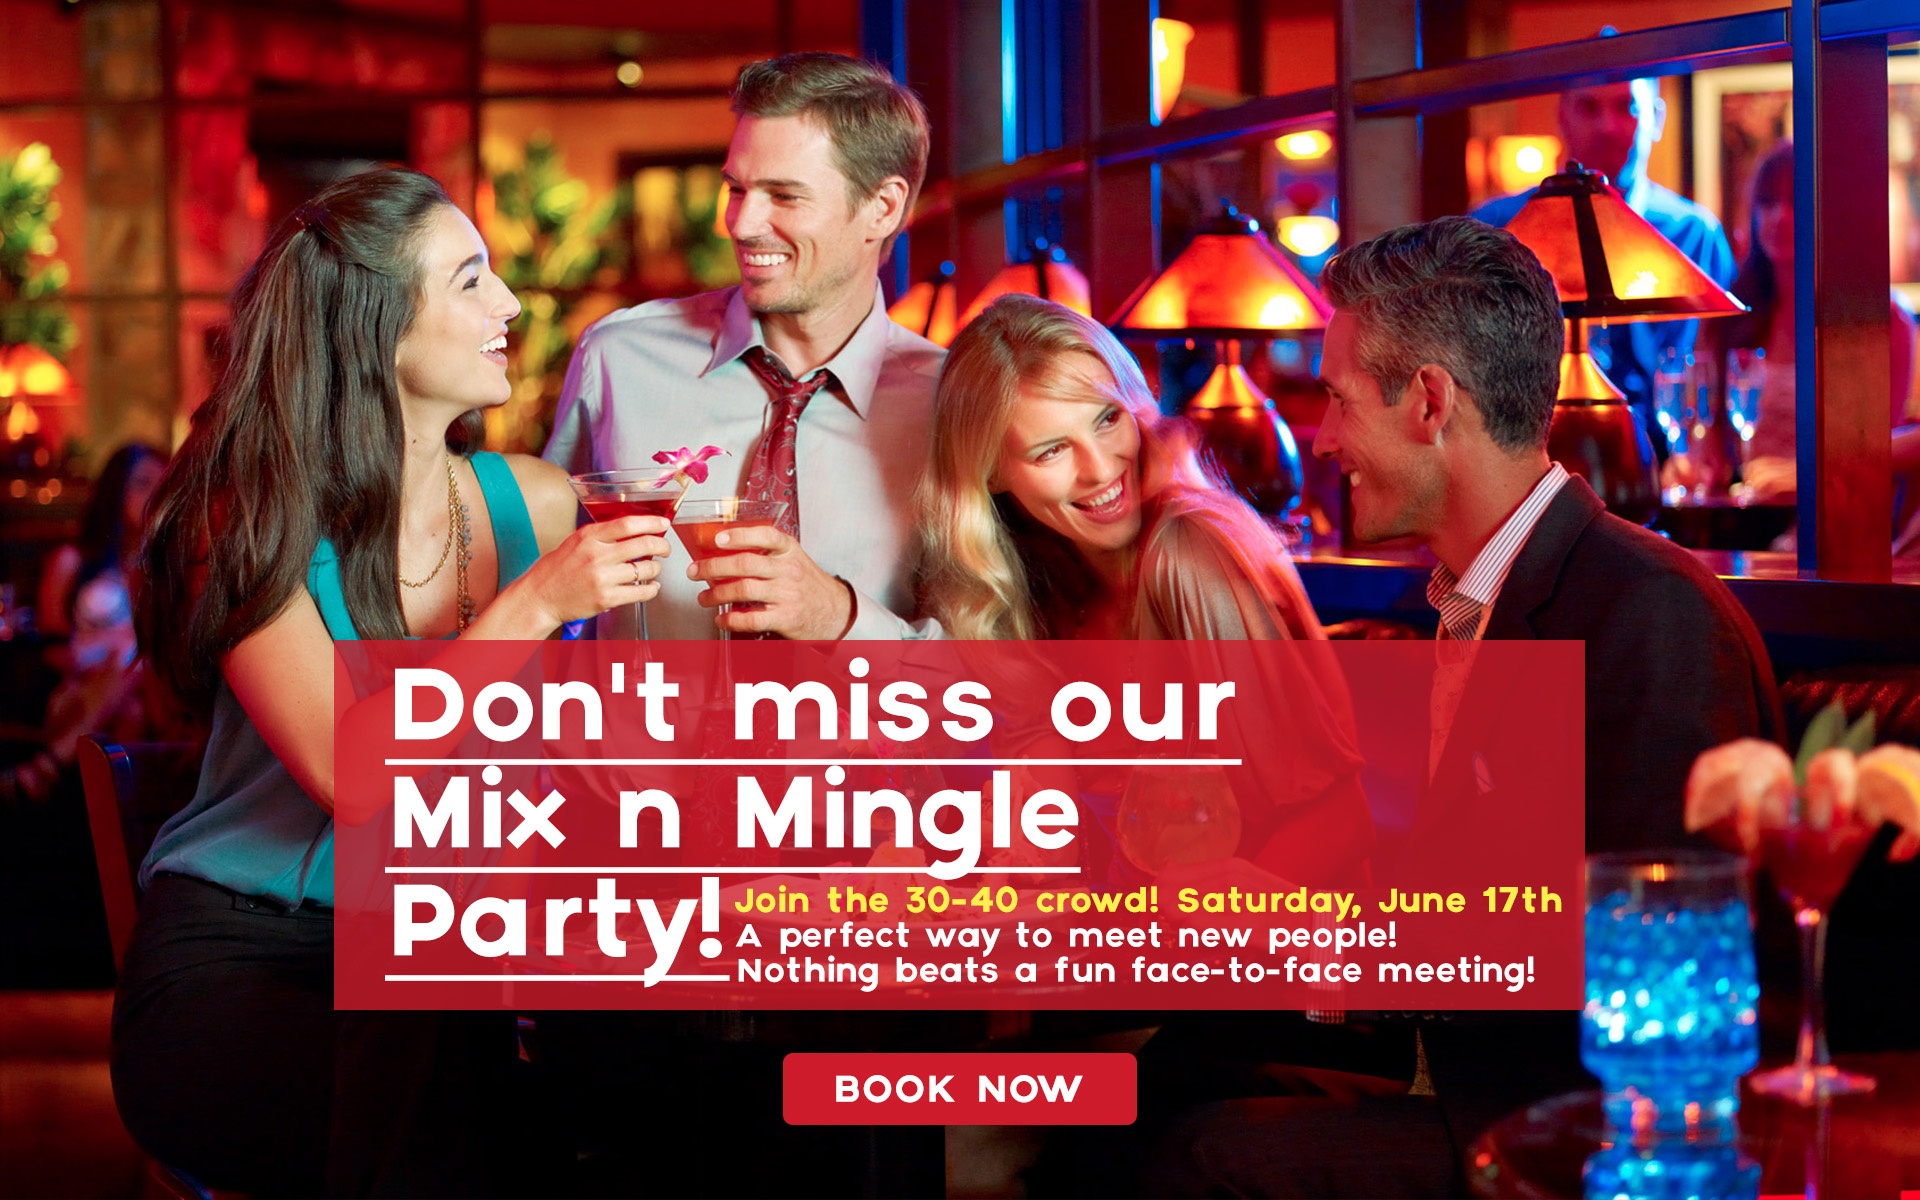 melbourne speed dating events